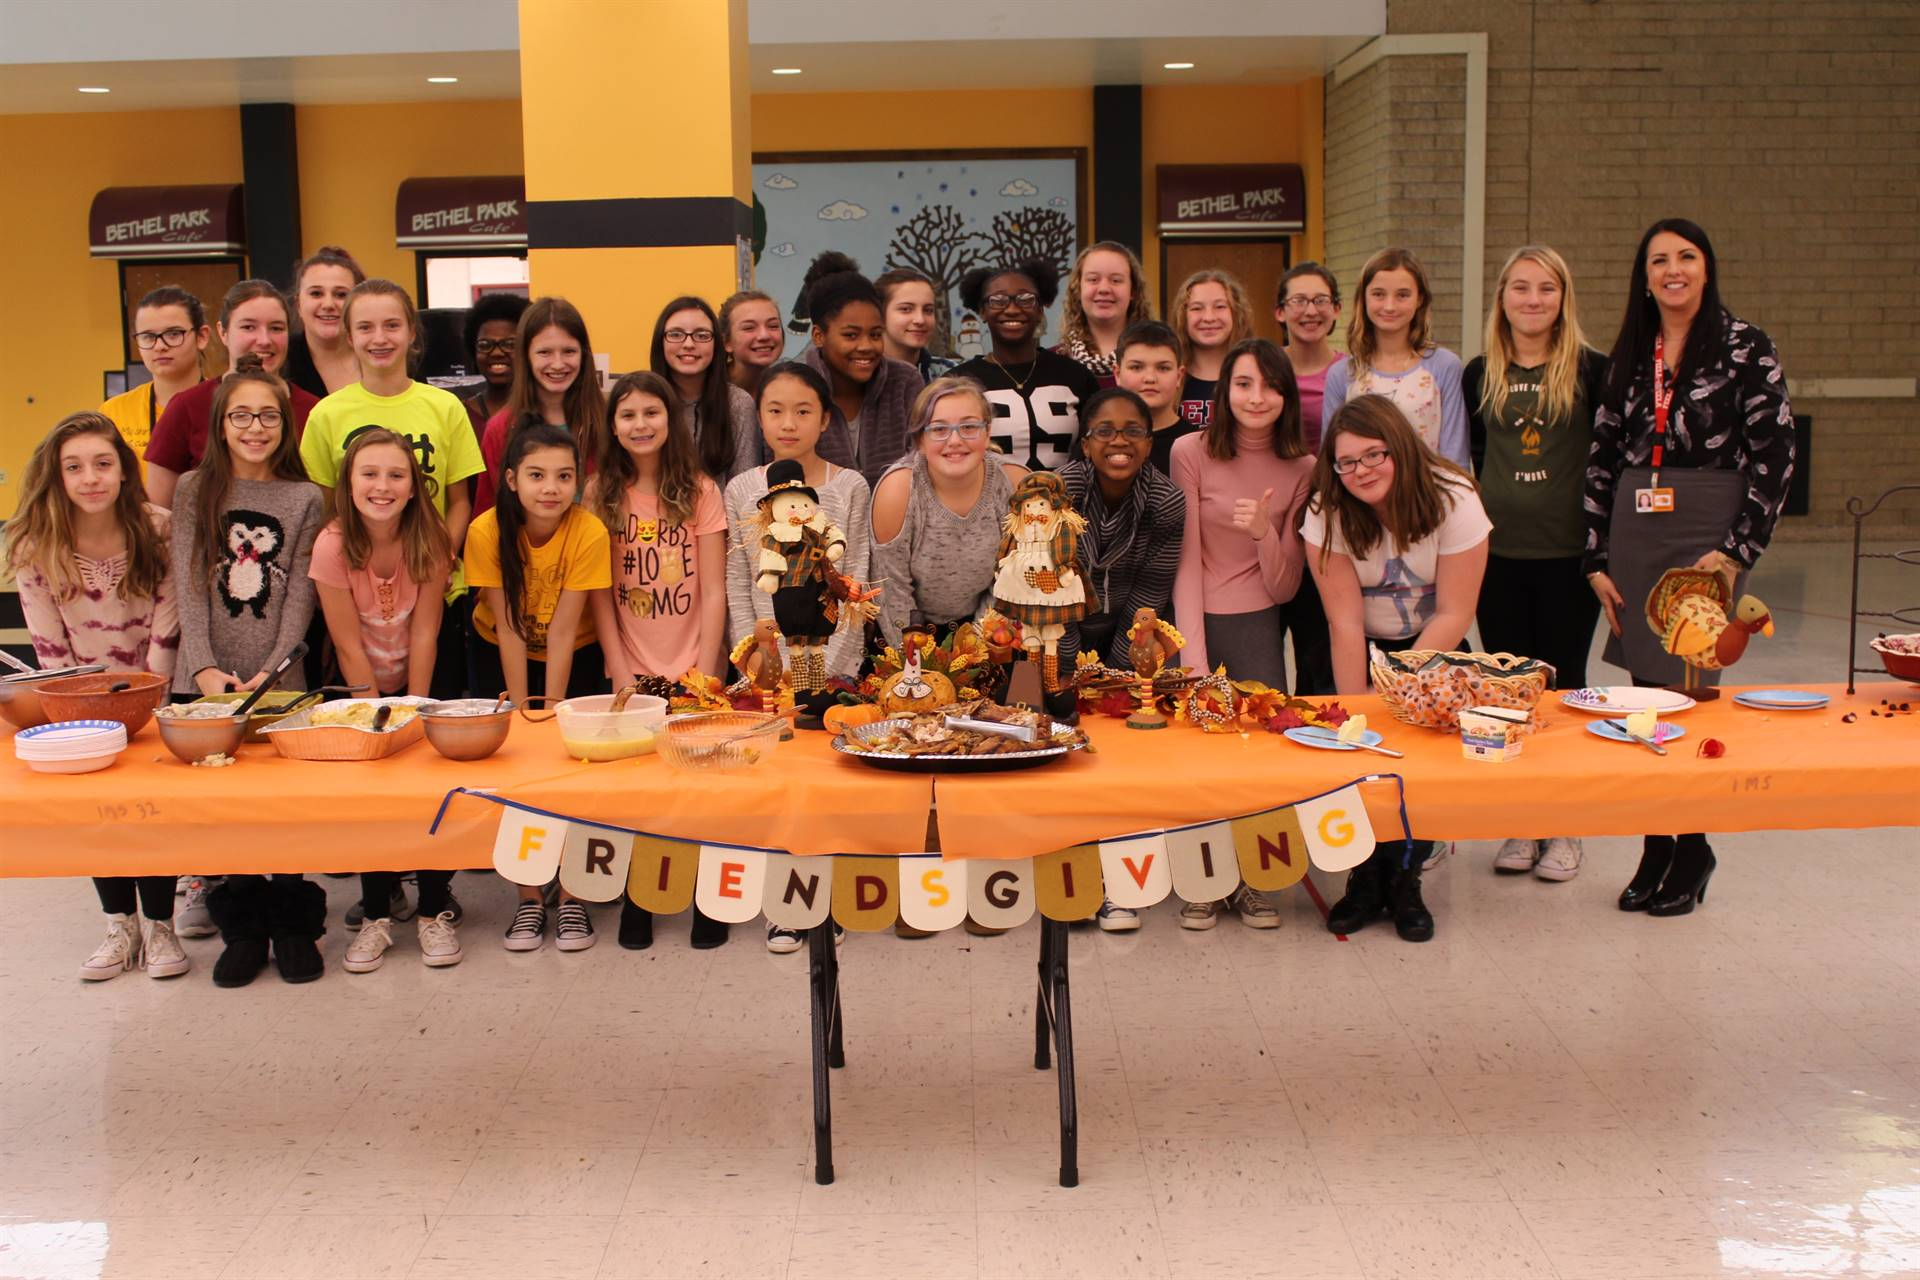 The FCCLA Club around the Friendsgiving table